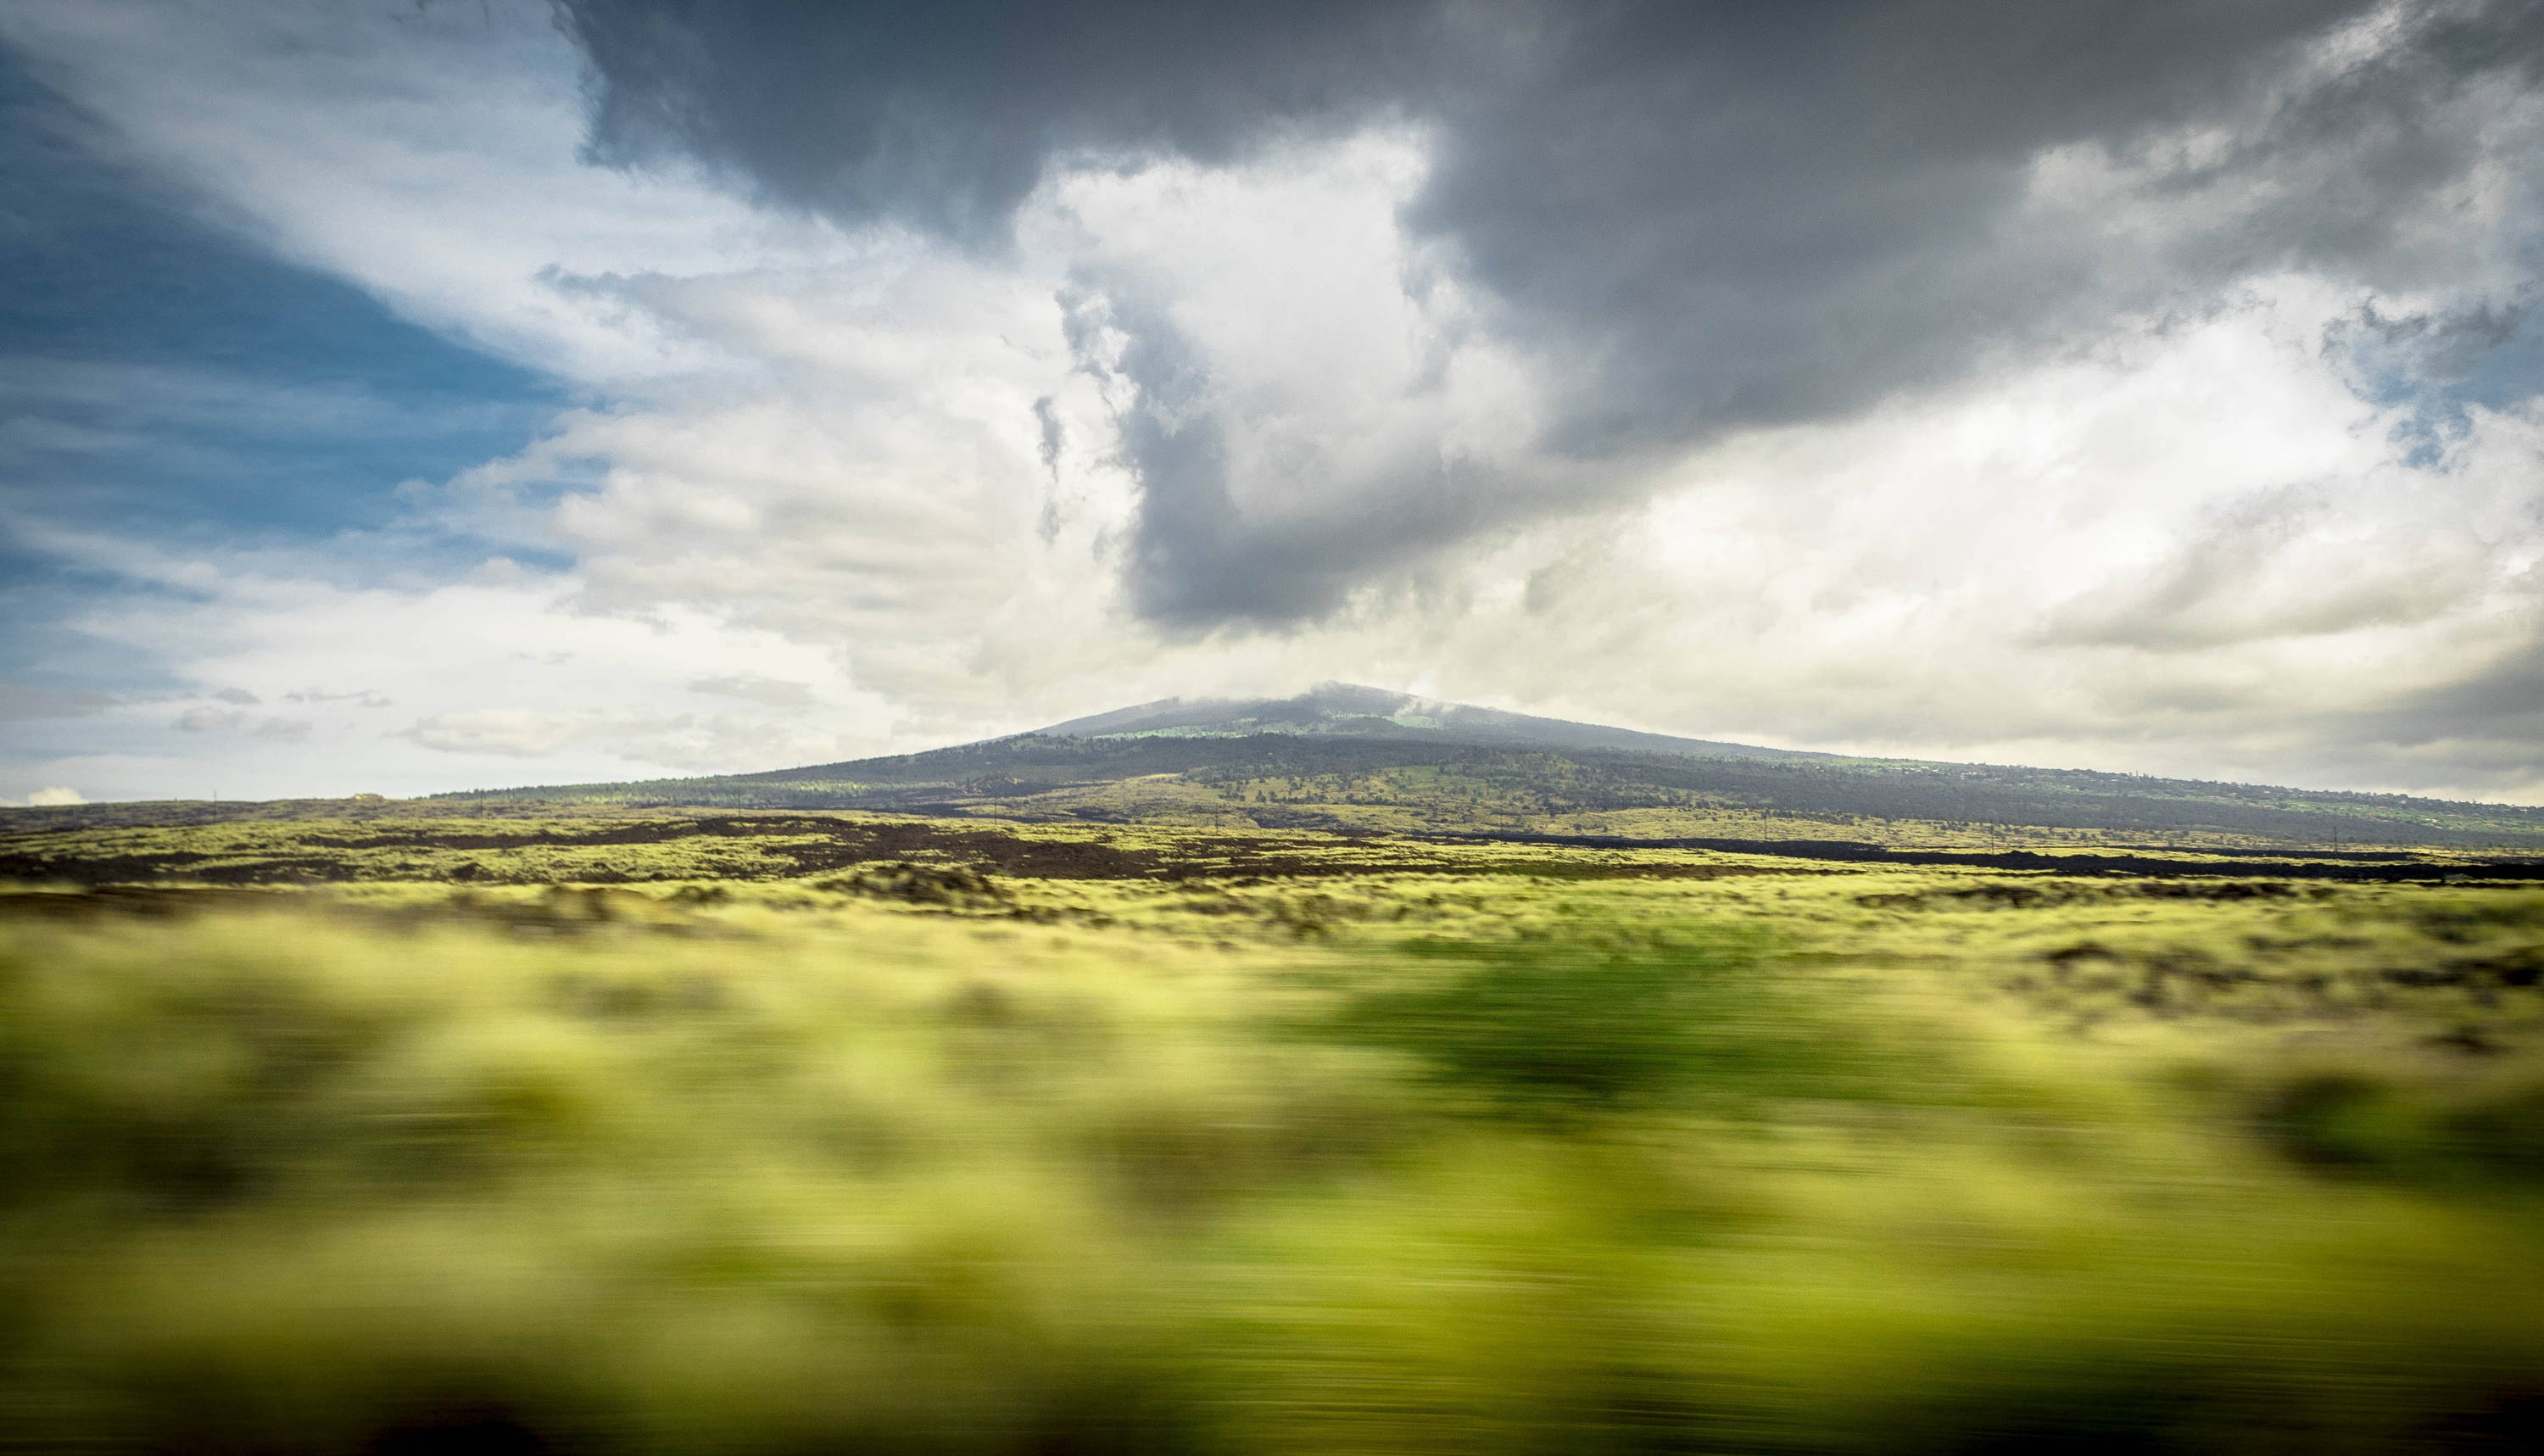 Things to Do in Hilo, Hawaii: Clouds loom over mountain in the distance with green space below; things to do in Hilo, Hawaii.